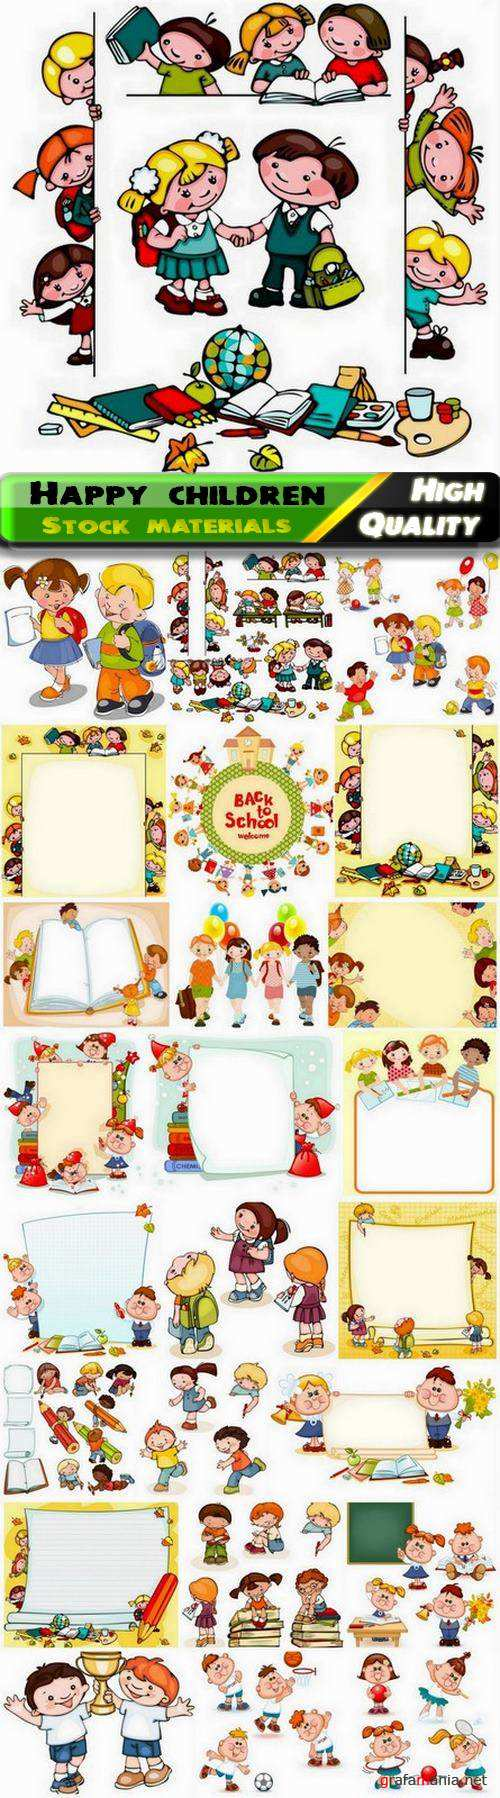 Illustration of happy playing kids and children - 25 Eps